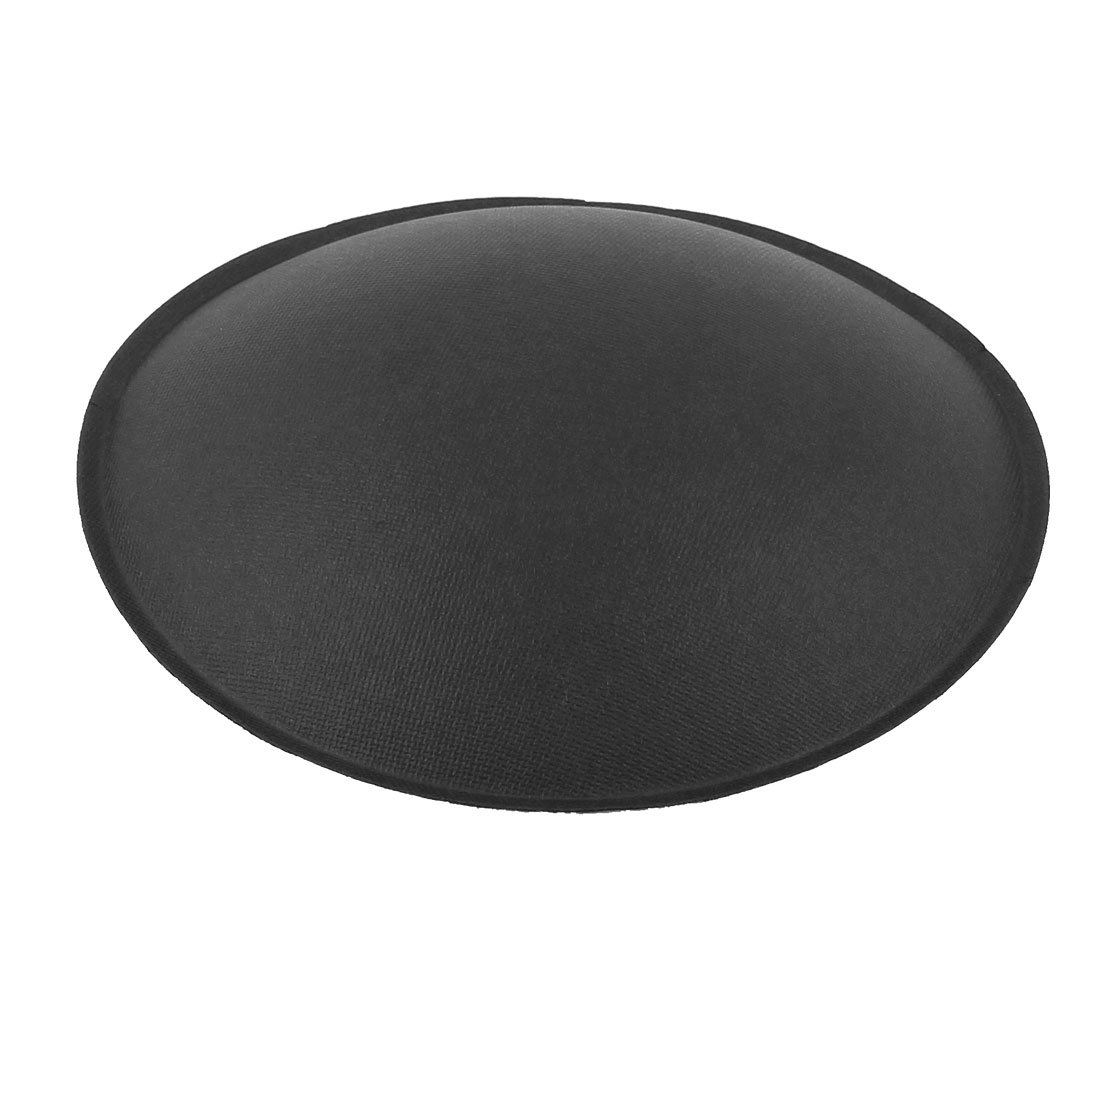 115mm Dia Dome Shape Audio Speaker Loudspeaker Subwoofer Dustproof Cover Cap